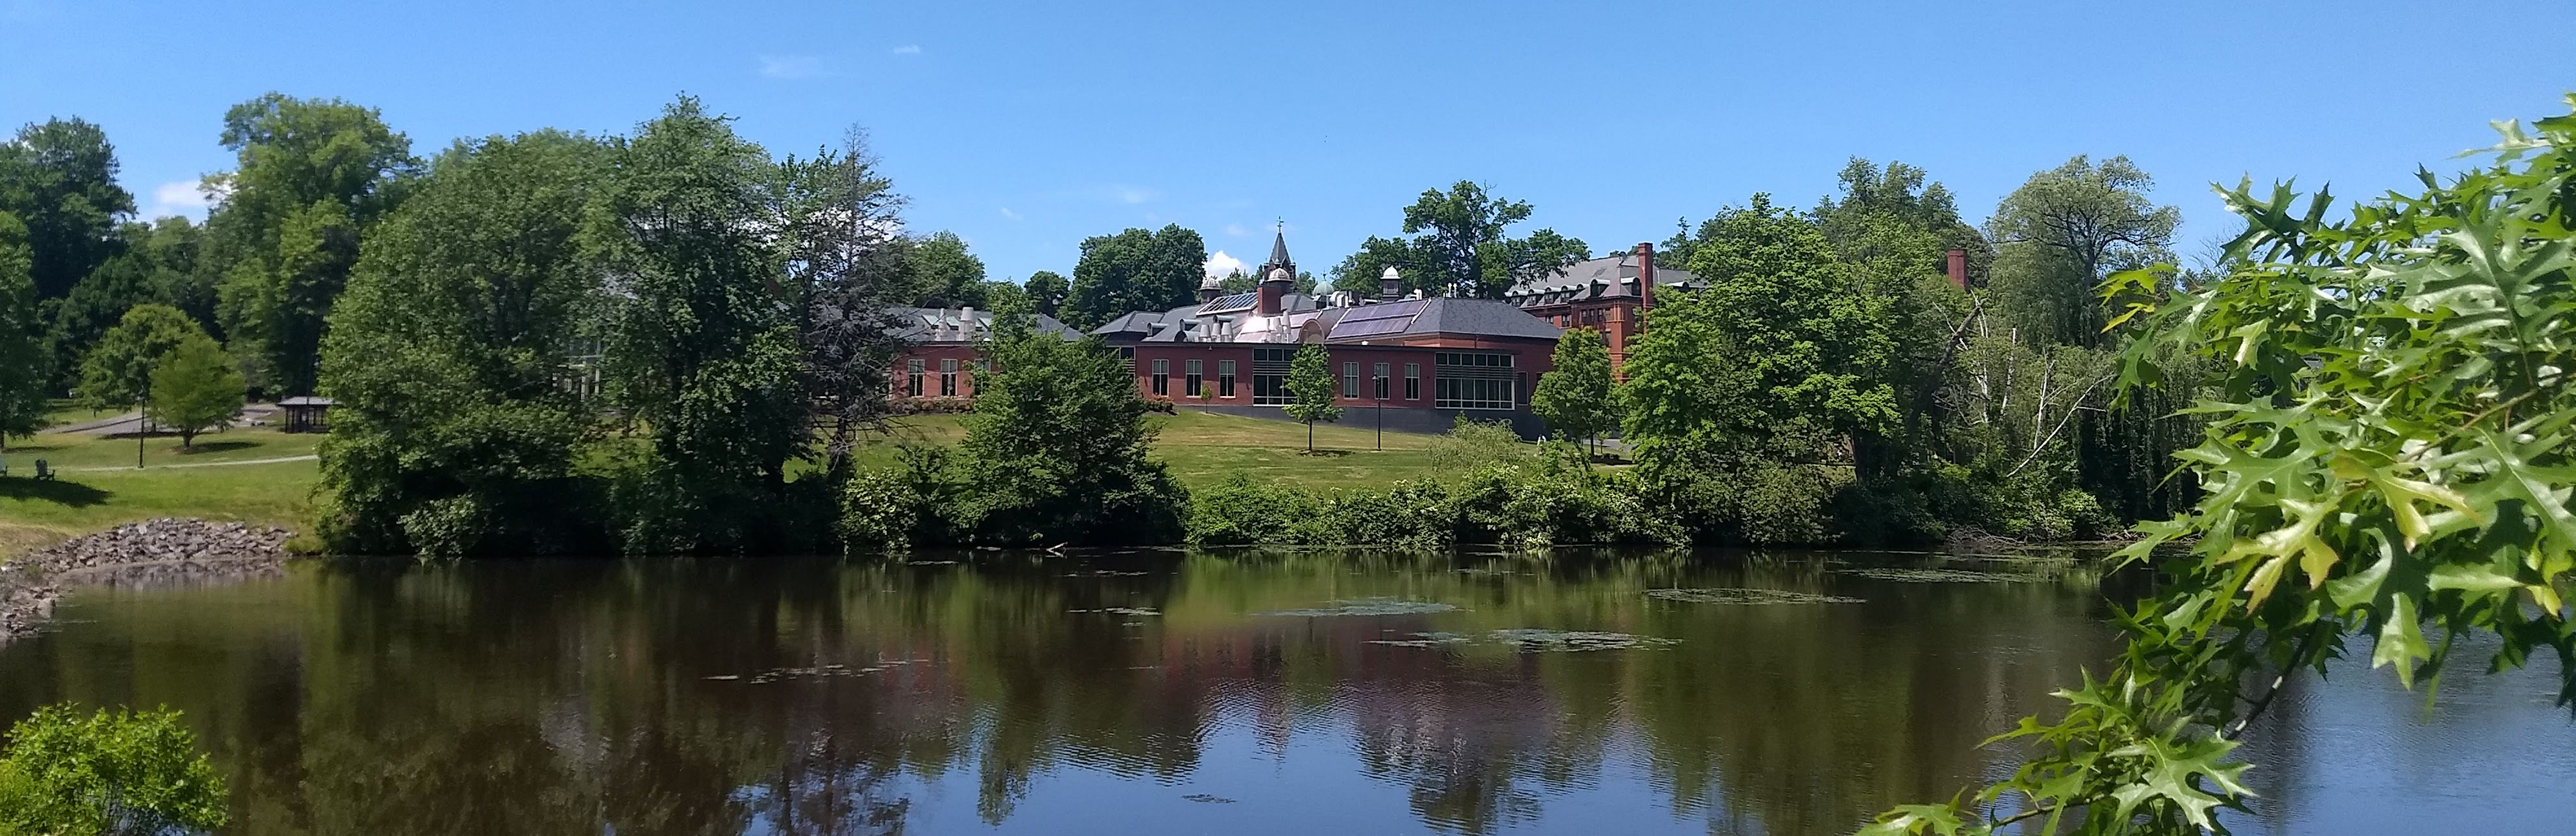 Summer view of campus from Lower Lake